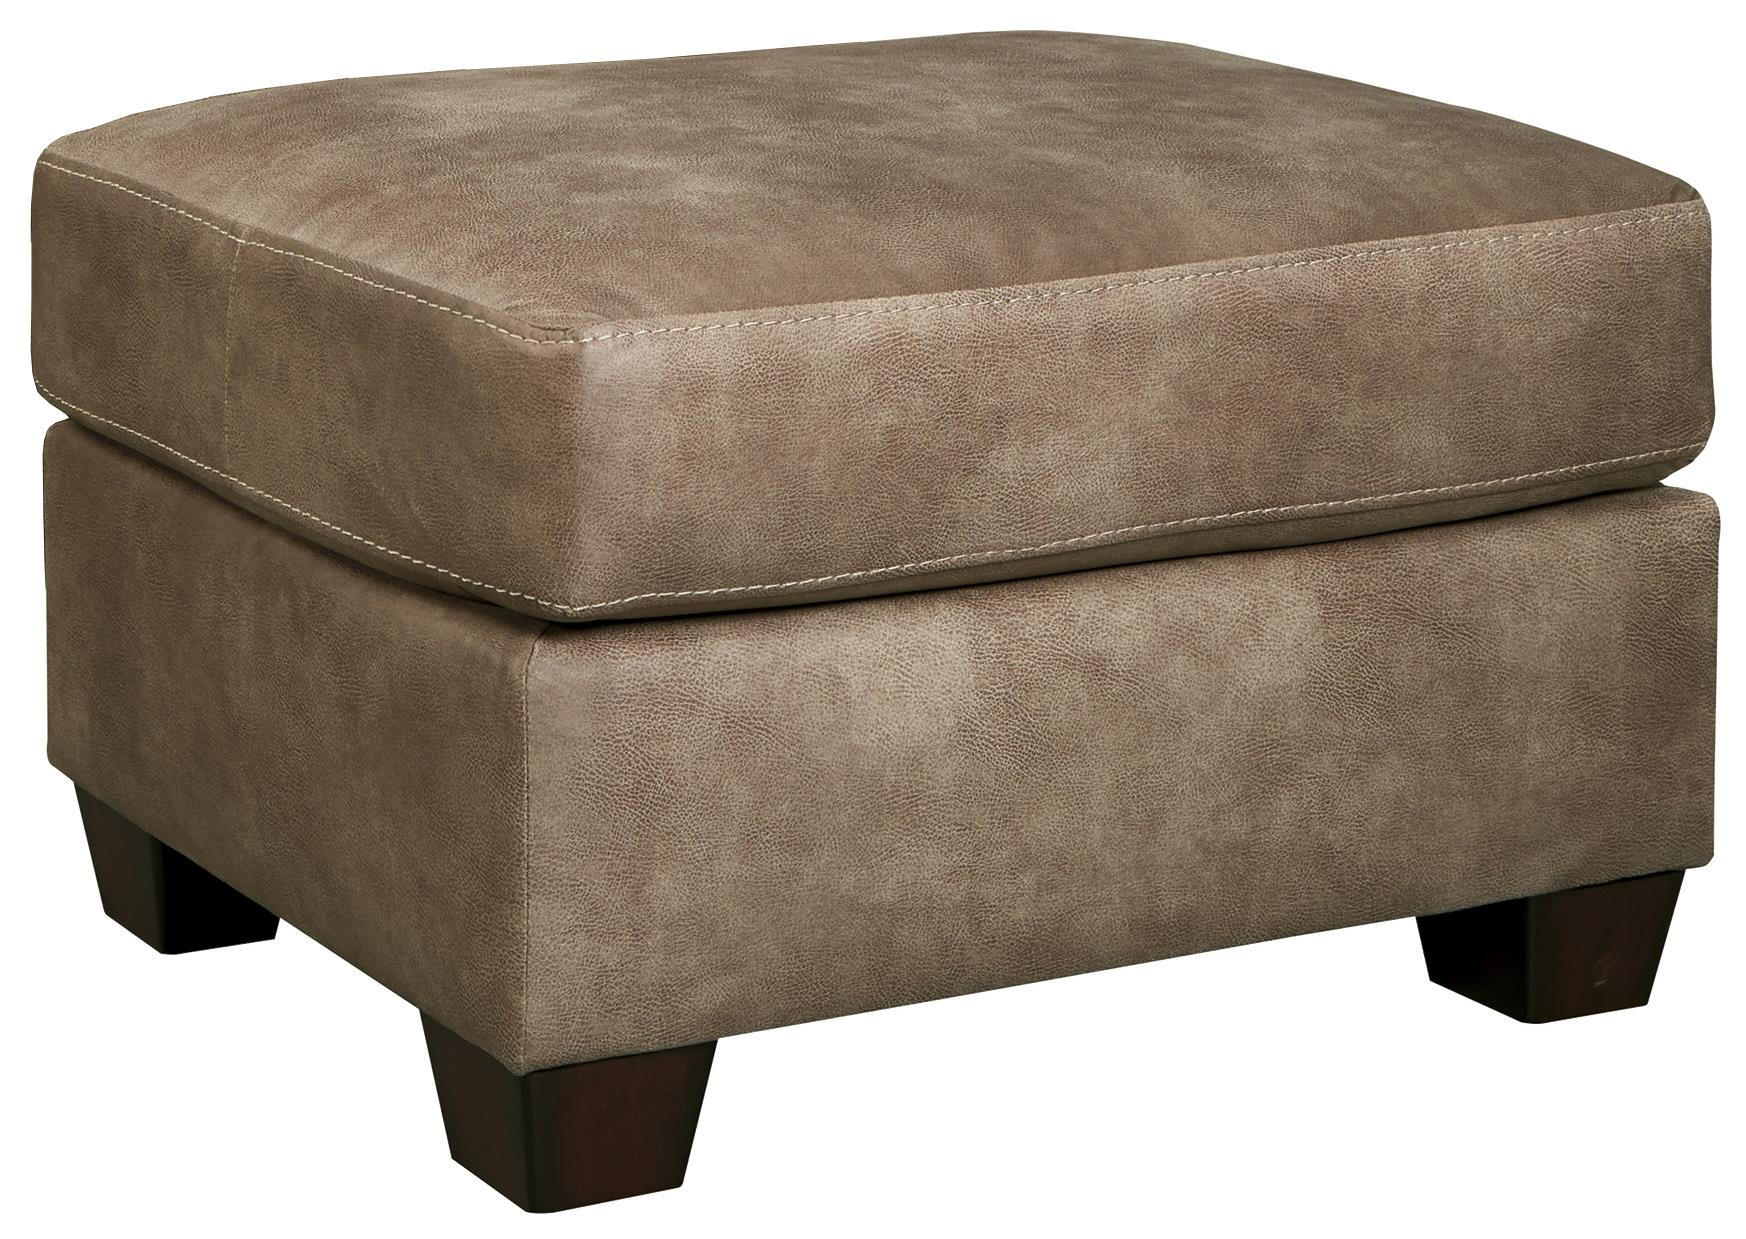 Benchcraft Alturo Ottoman - Item Number: 6000314